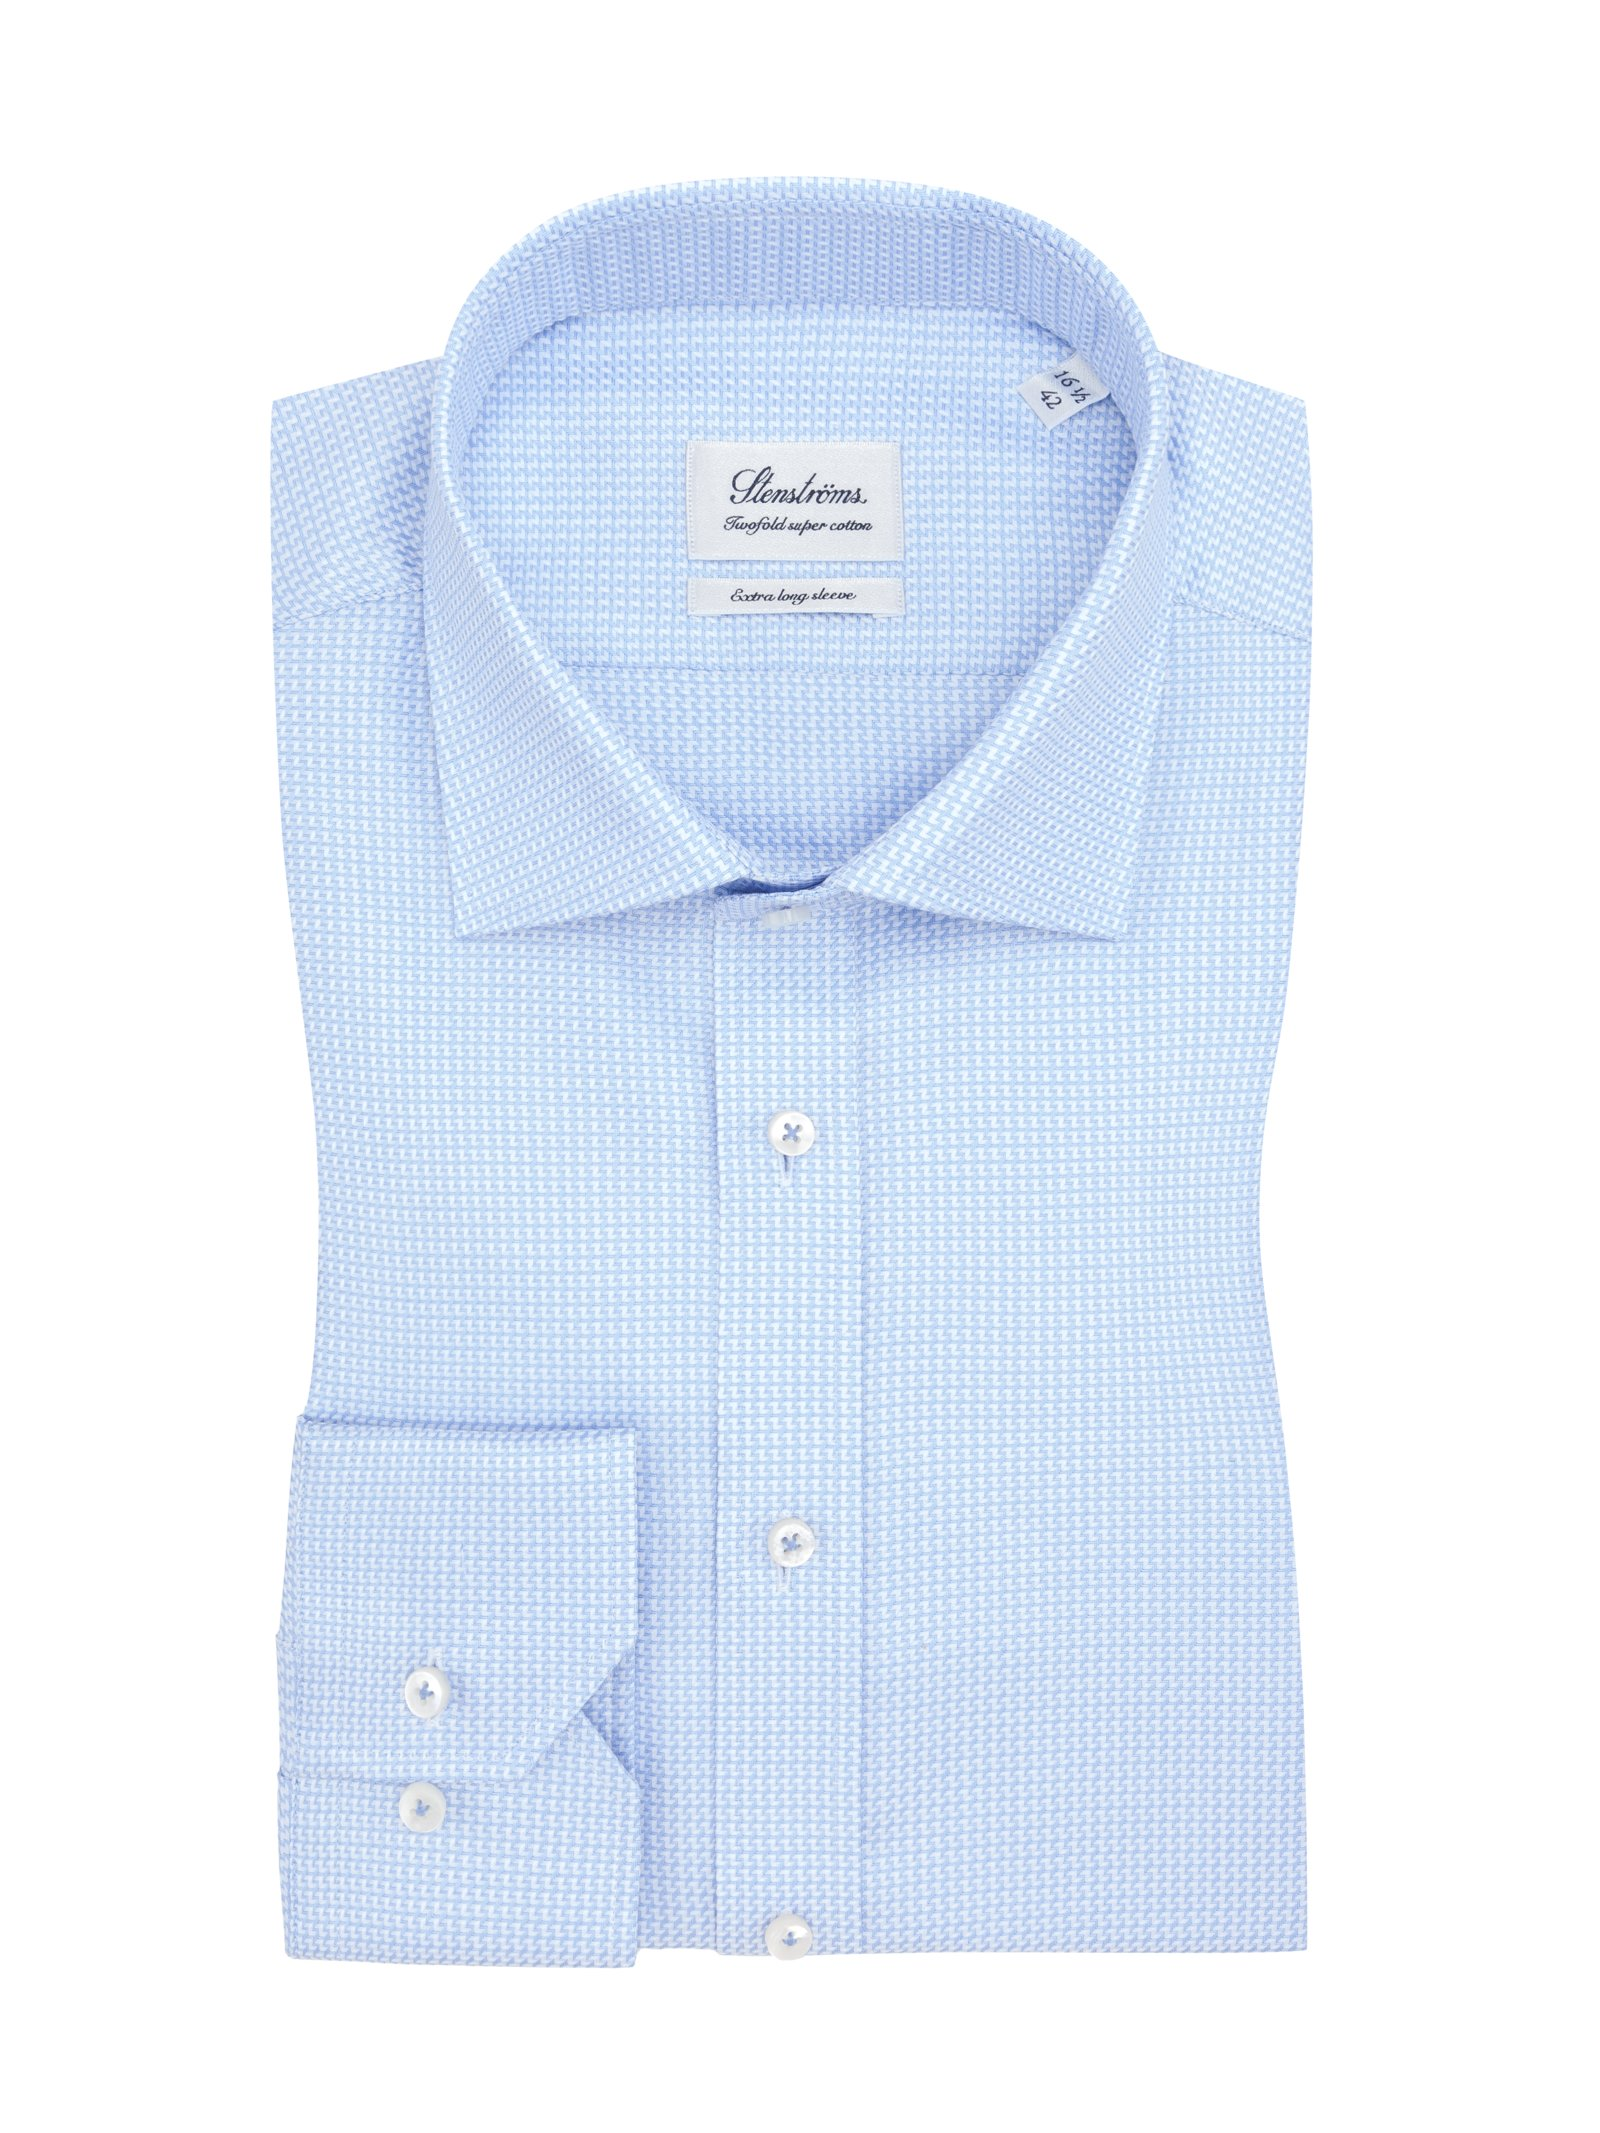 Shirt with extra long sleeves, light blue 43SL